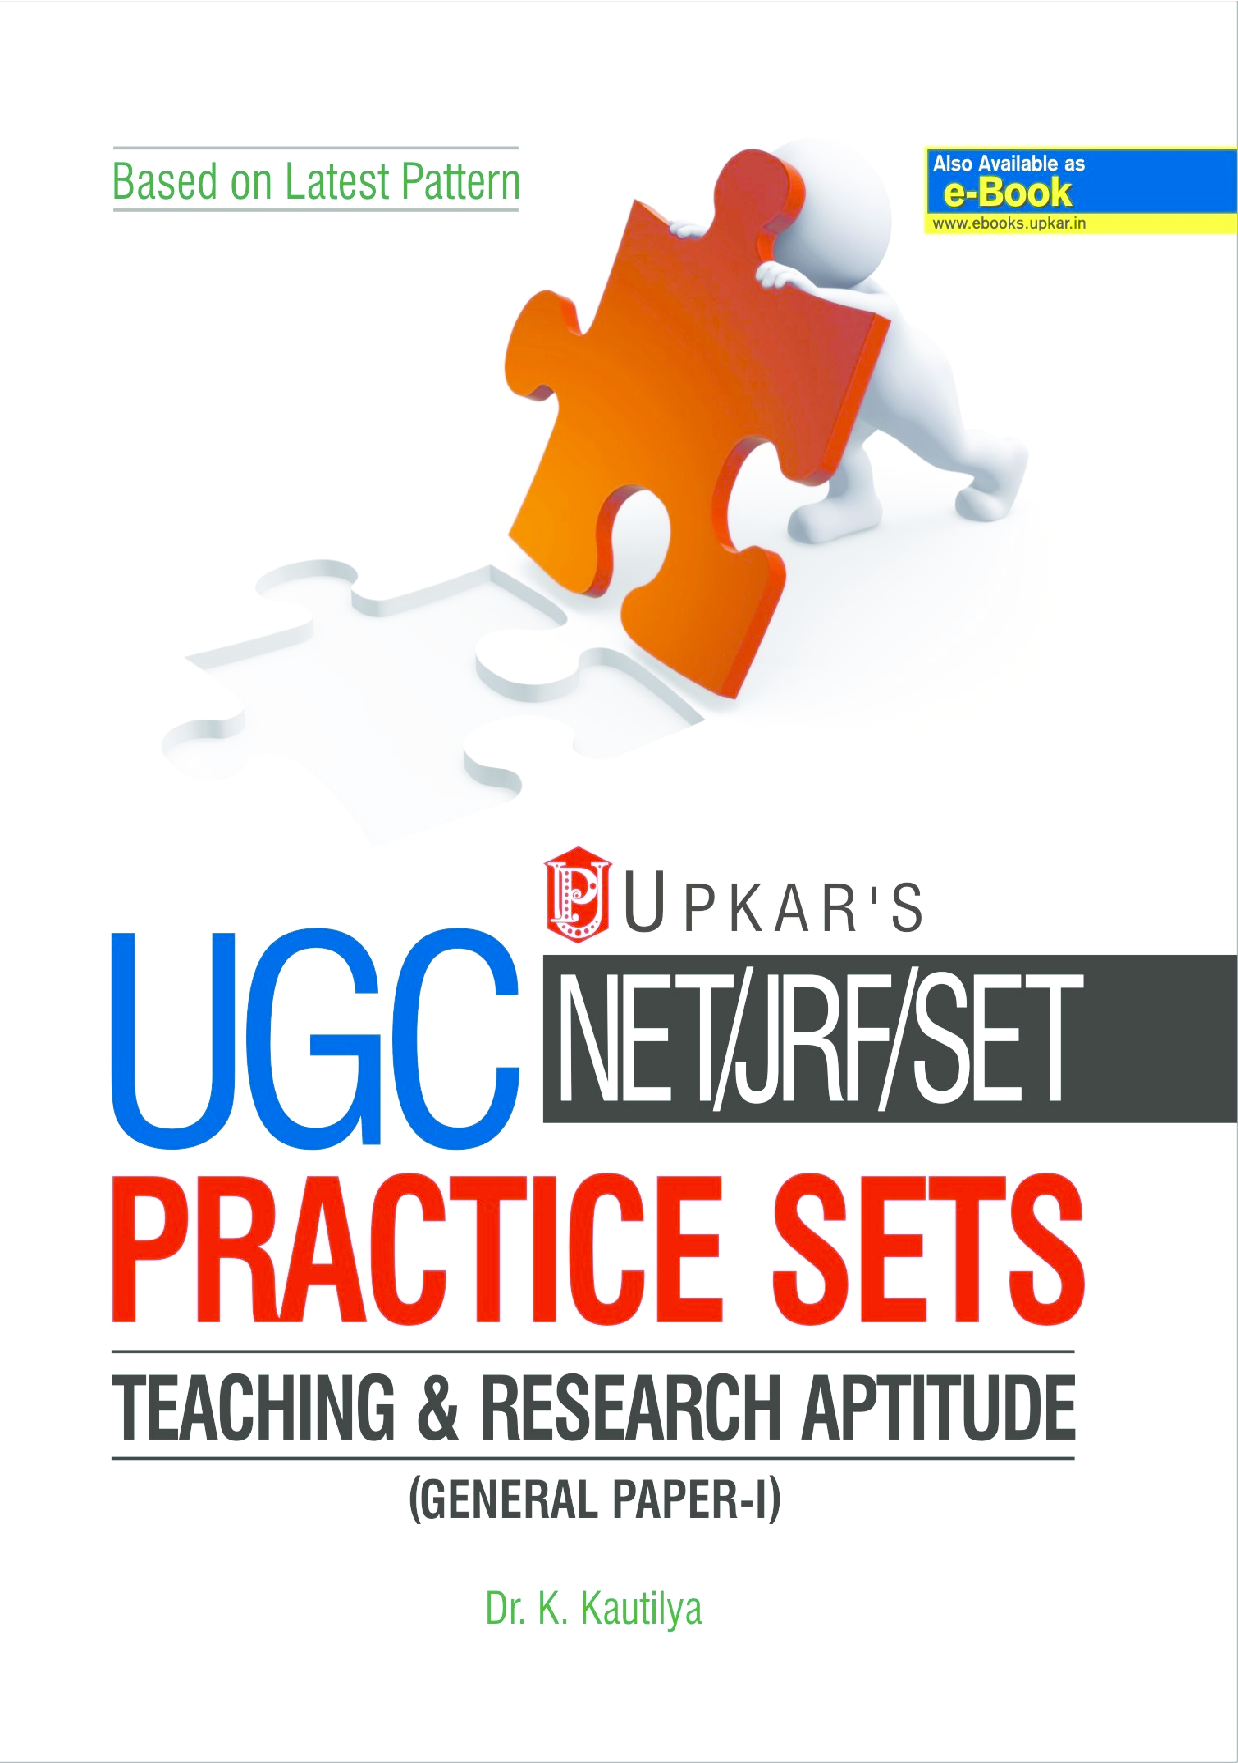 UGC NET/JRF/SET Practice Sets Teaching And Research Aptitude (General Paper-I) - Page 1